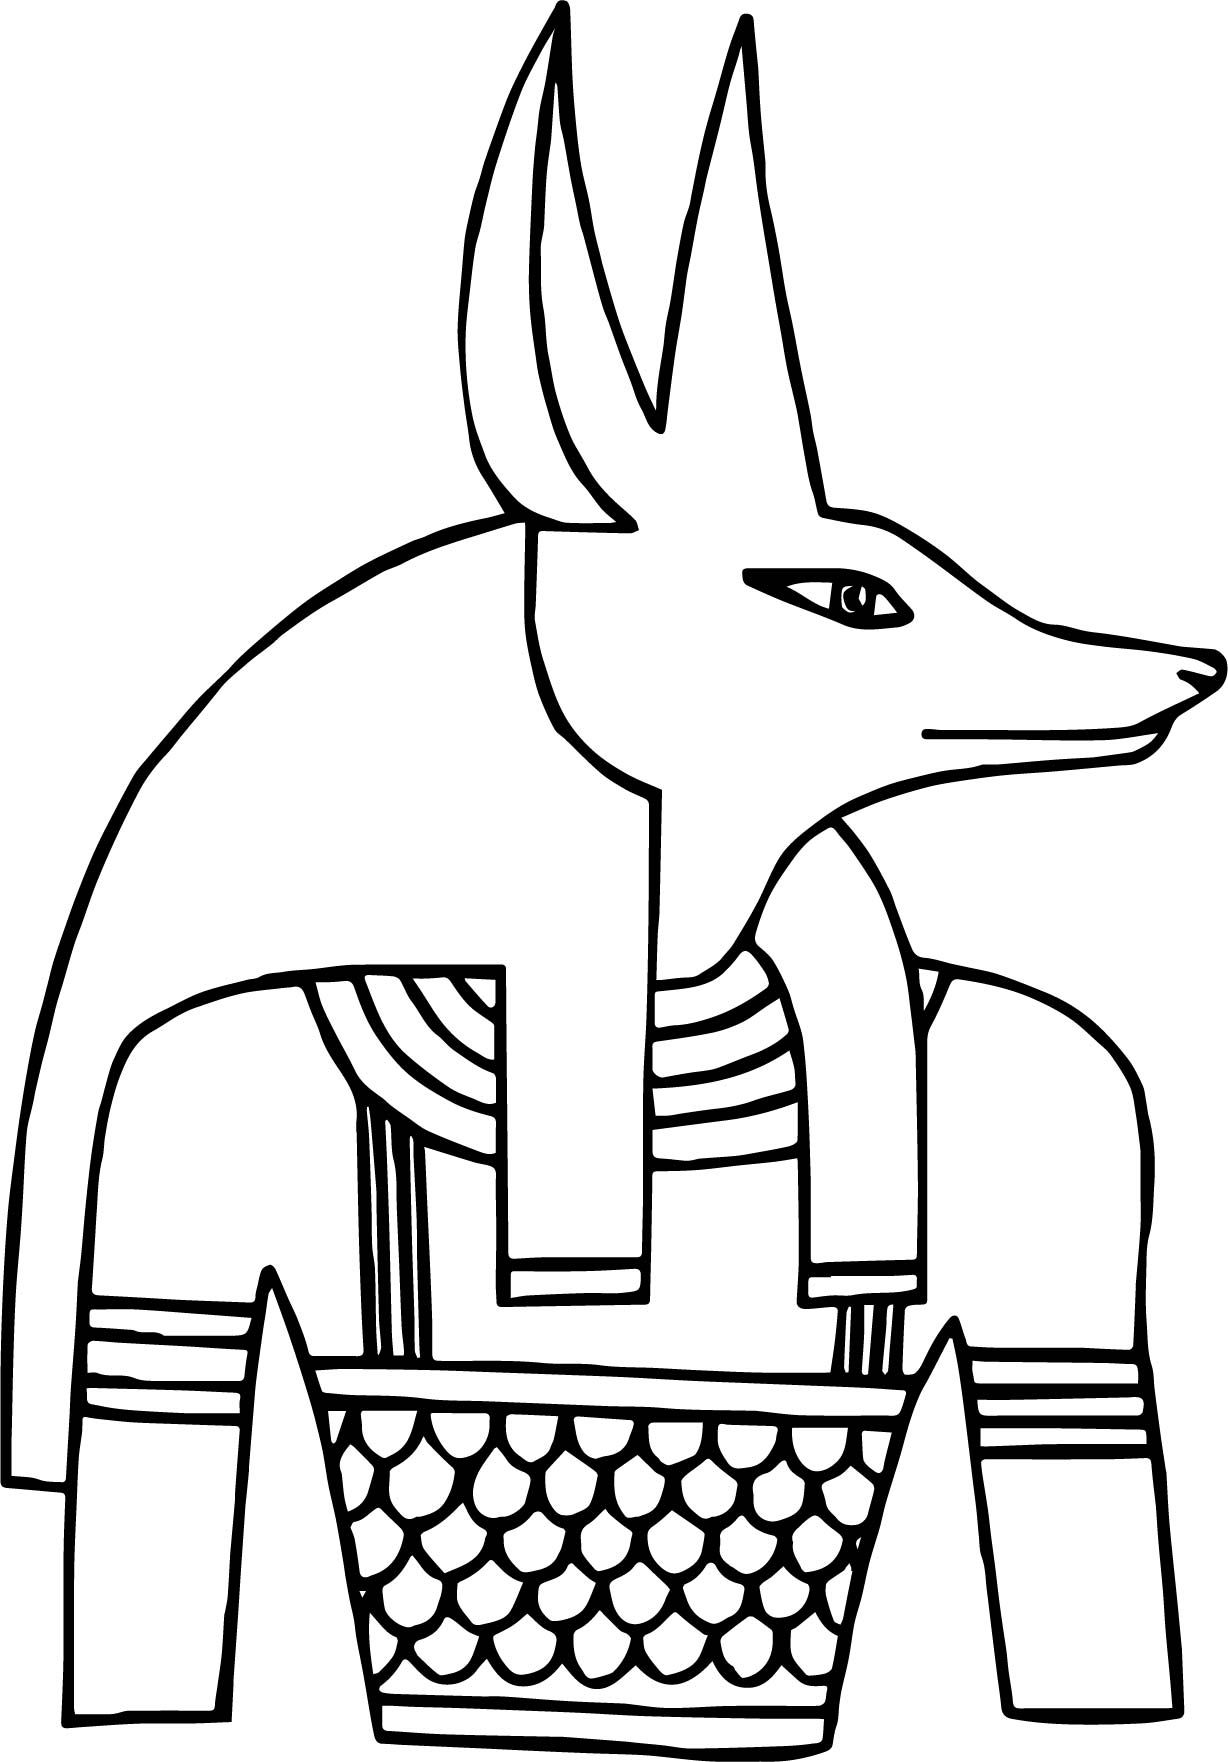 how to draw anubis step by step god of the dead anubis in the netherworld egyptian by how to step step draw anubis